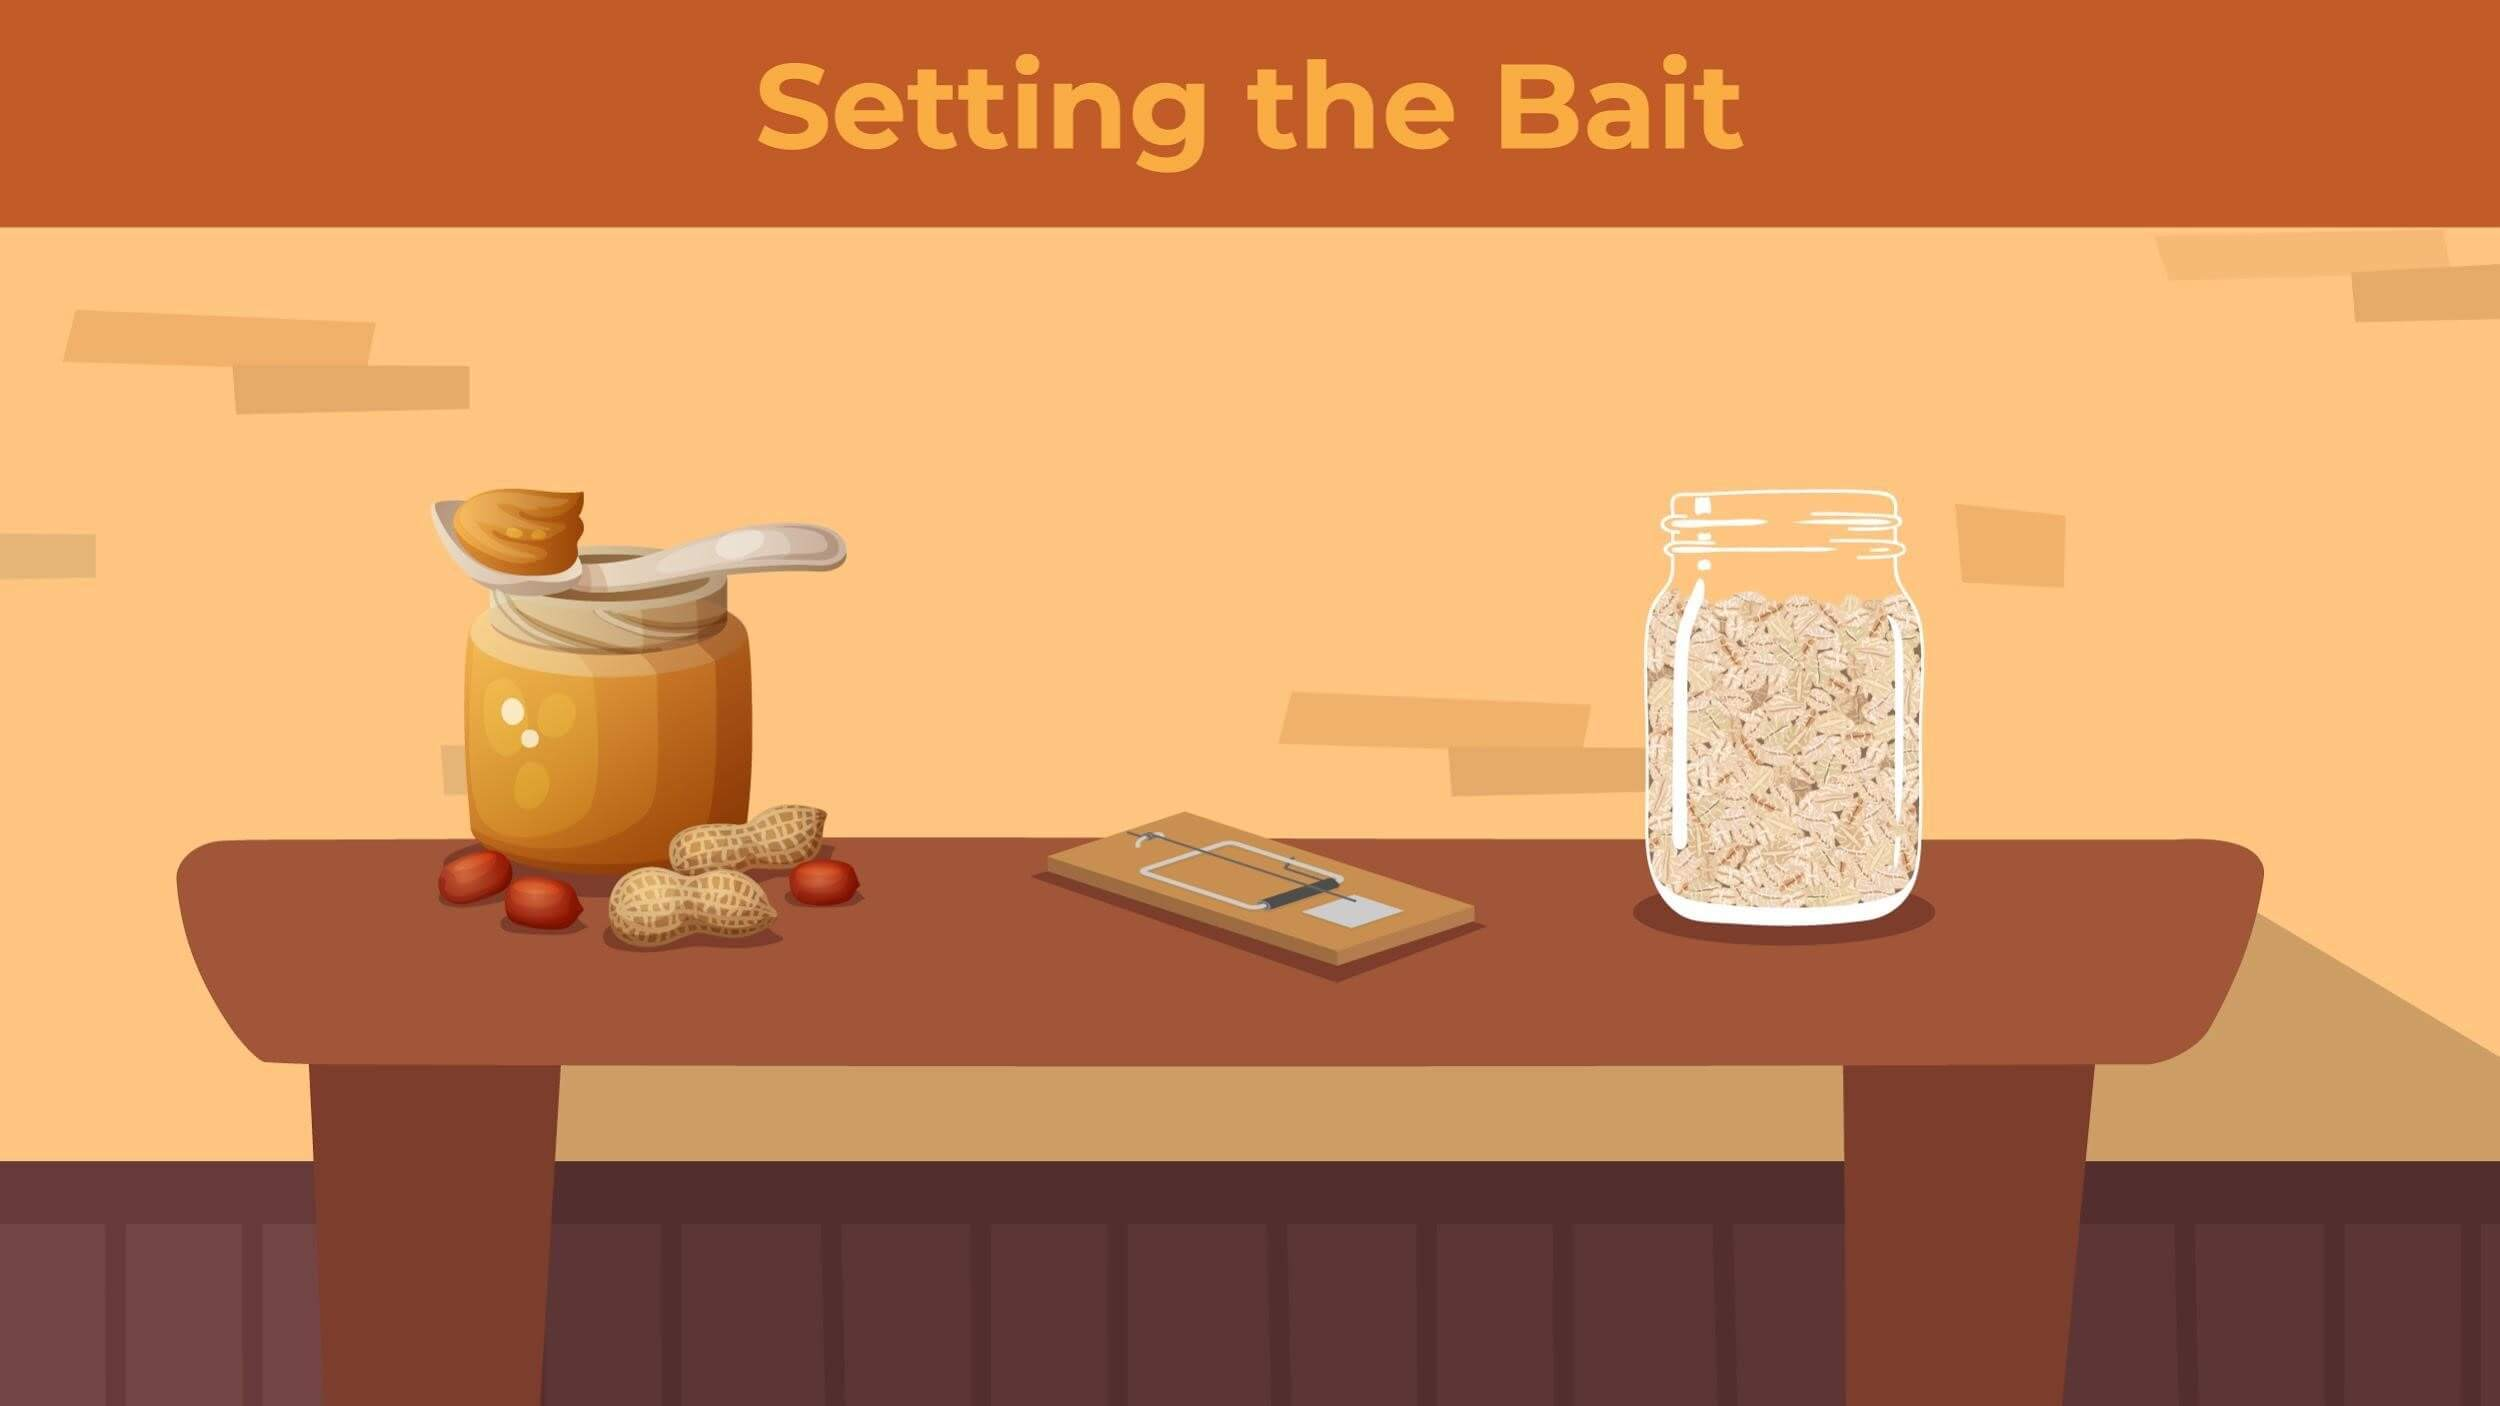 Illustration of peanut butter and dried oats sitting next to a snap trap on a table.